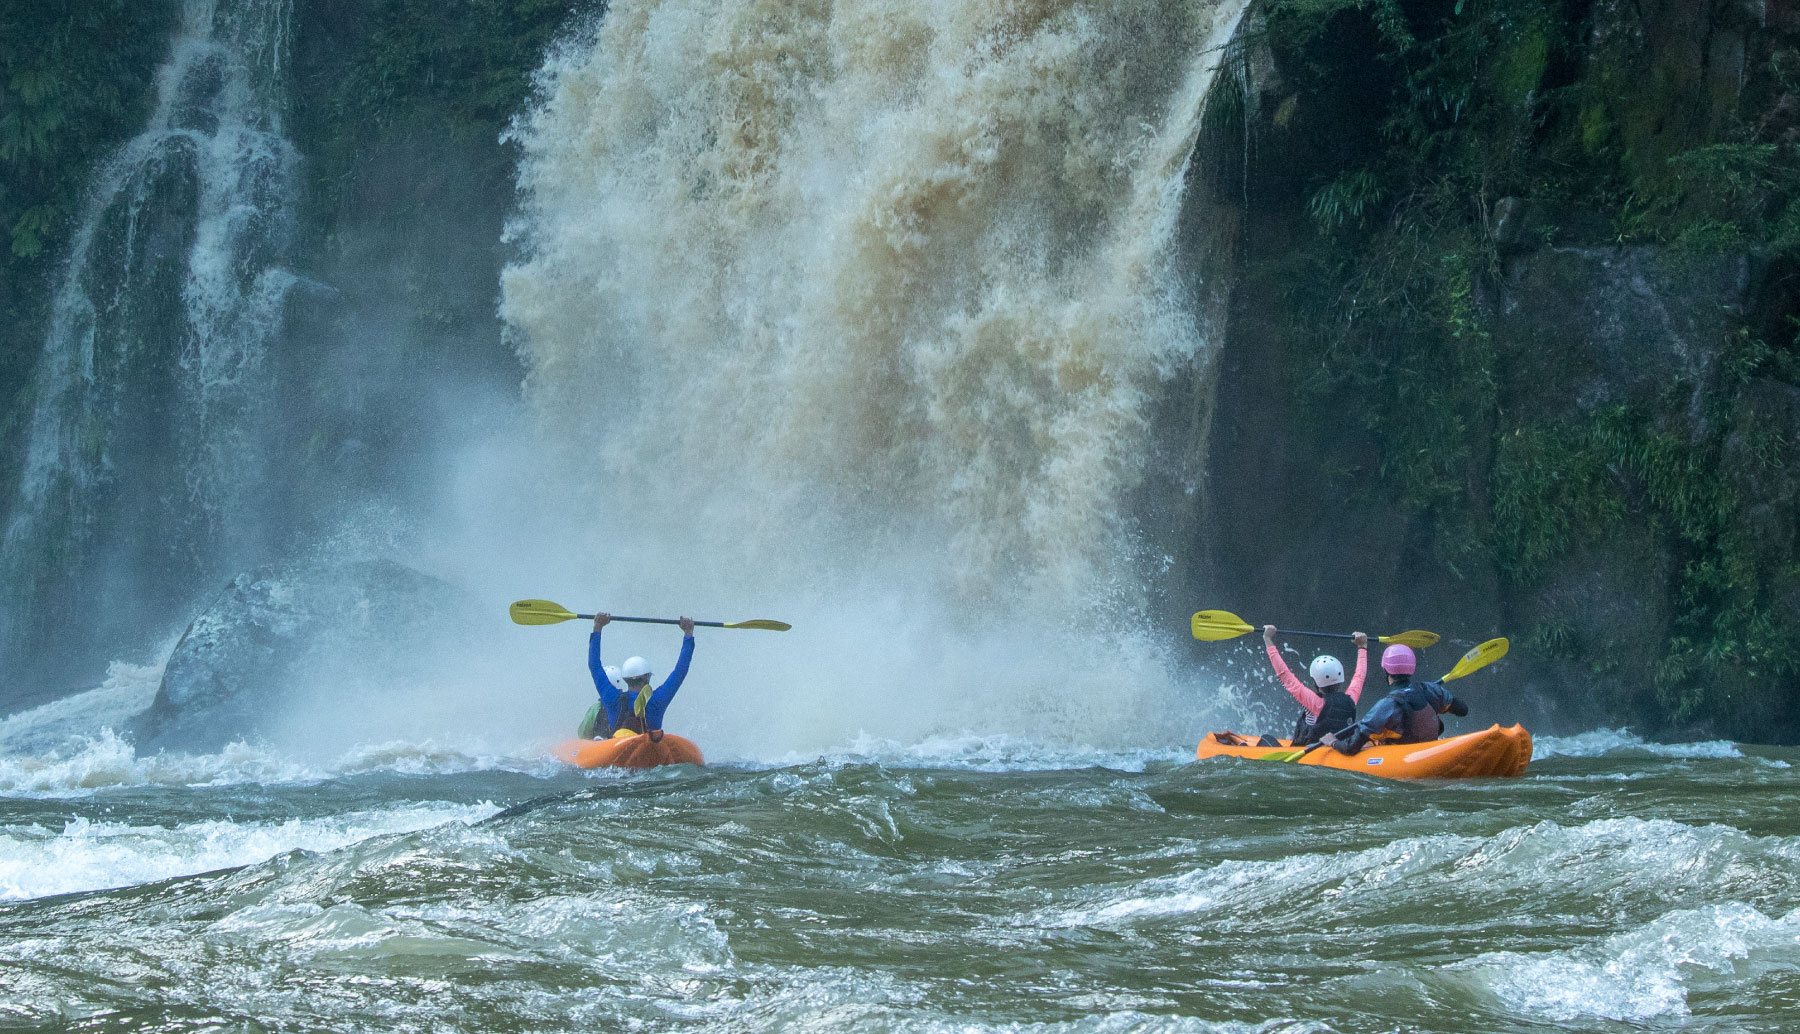 Inflatable Kayak Jondachi River | Rafting the Jondachi with waterfalls